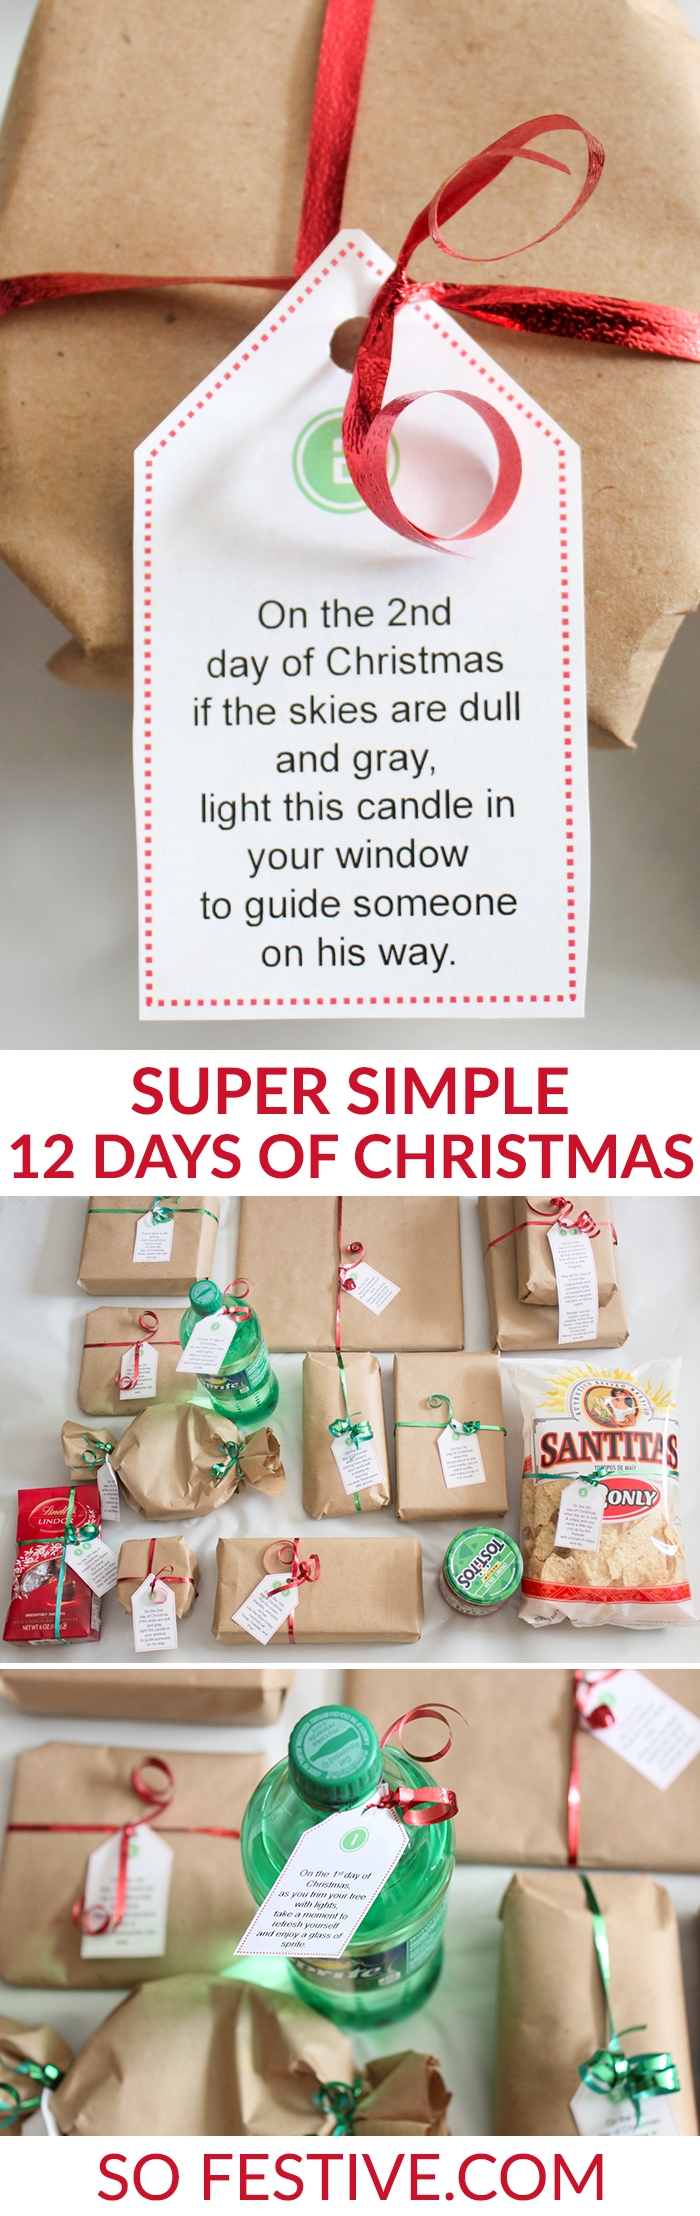 10 Pretty 12 Days Of Christmas Ideas For Kids easy 12 days of christmas idea printables dollar stores poem 1 2020